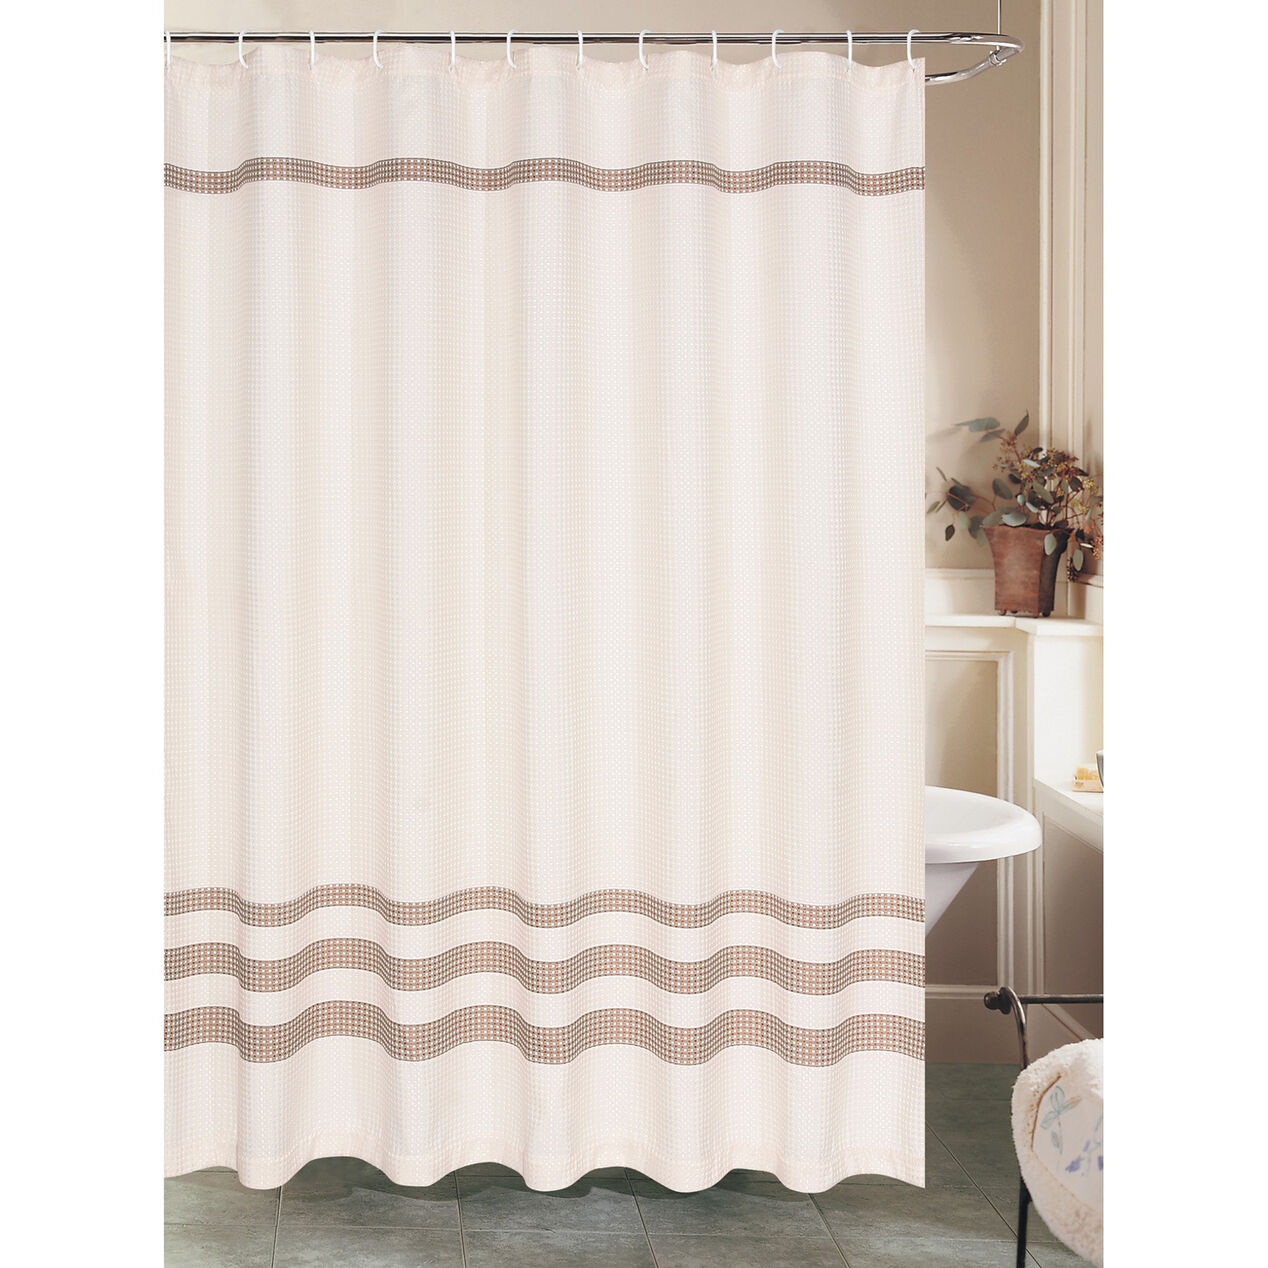 Cream Waffle Shower Curtain with Brown Stripe - At Home